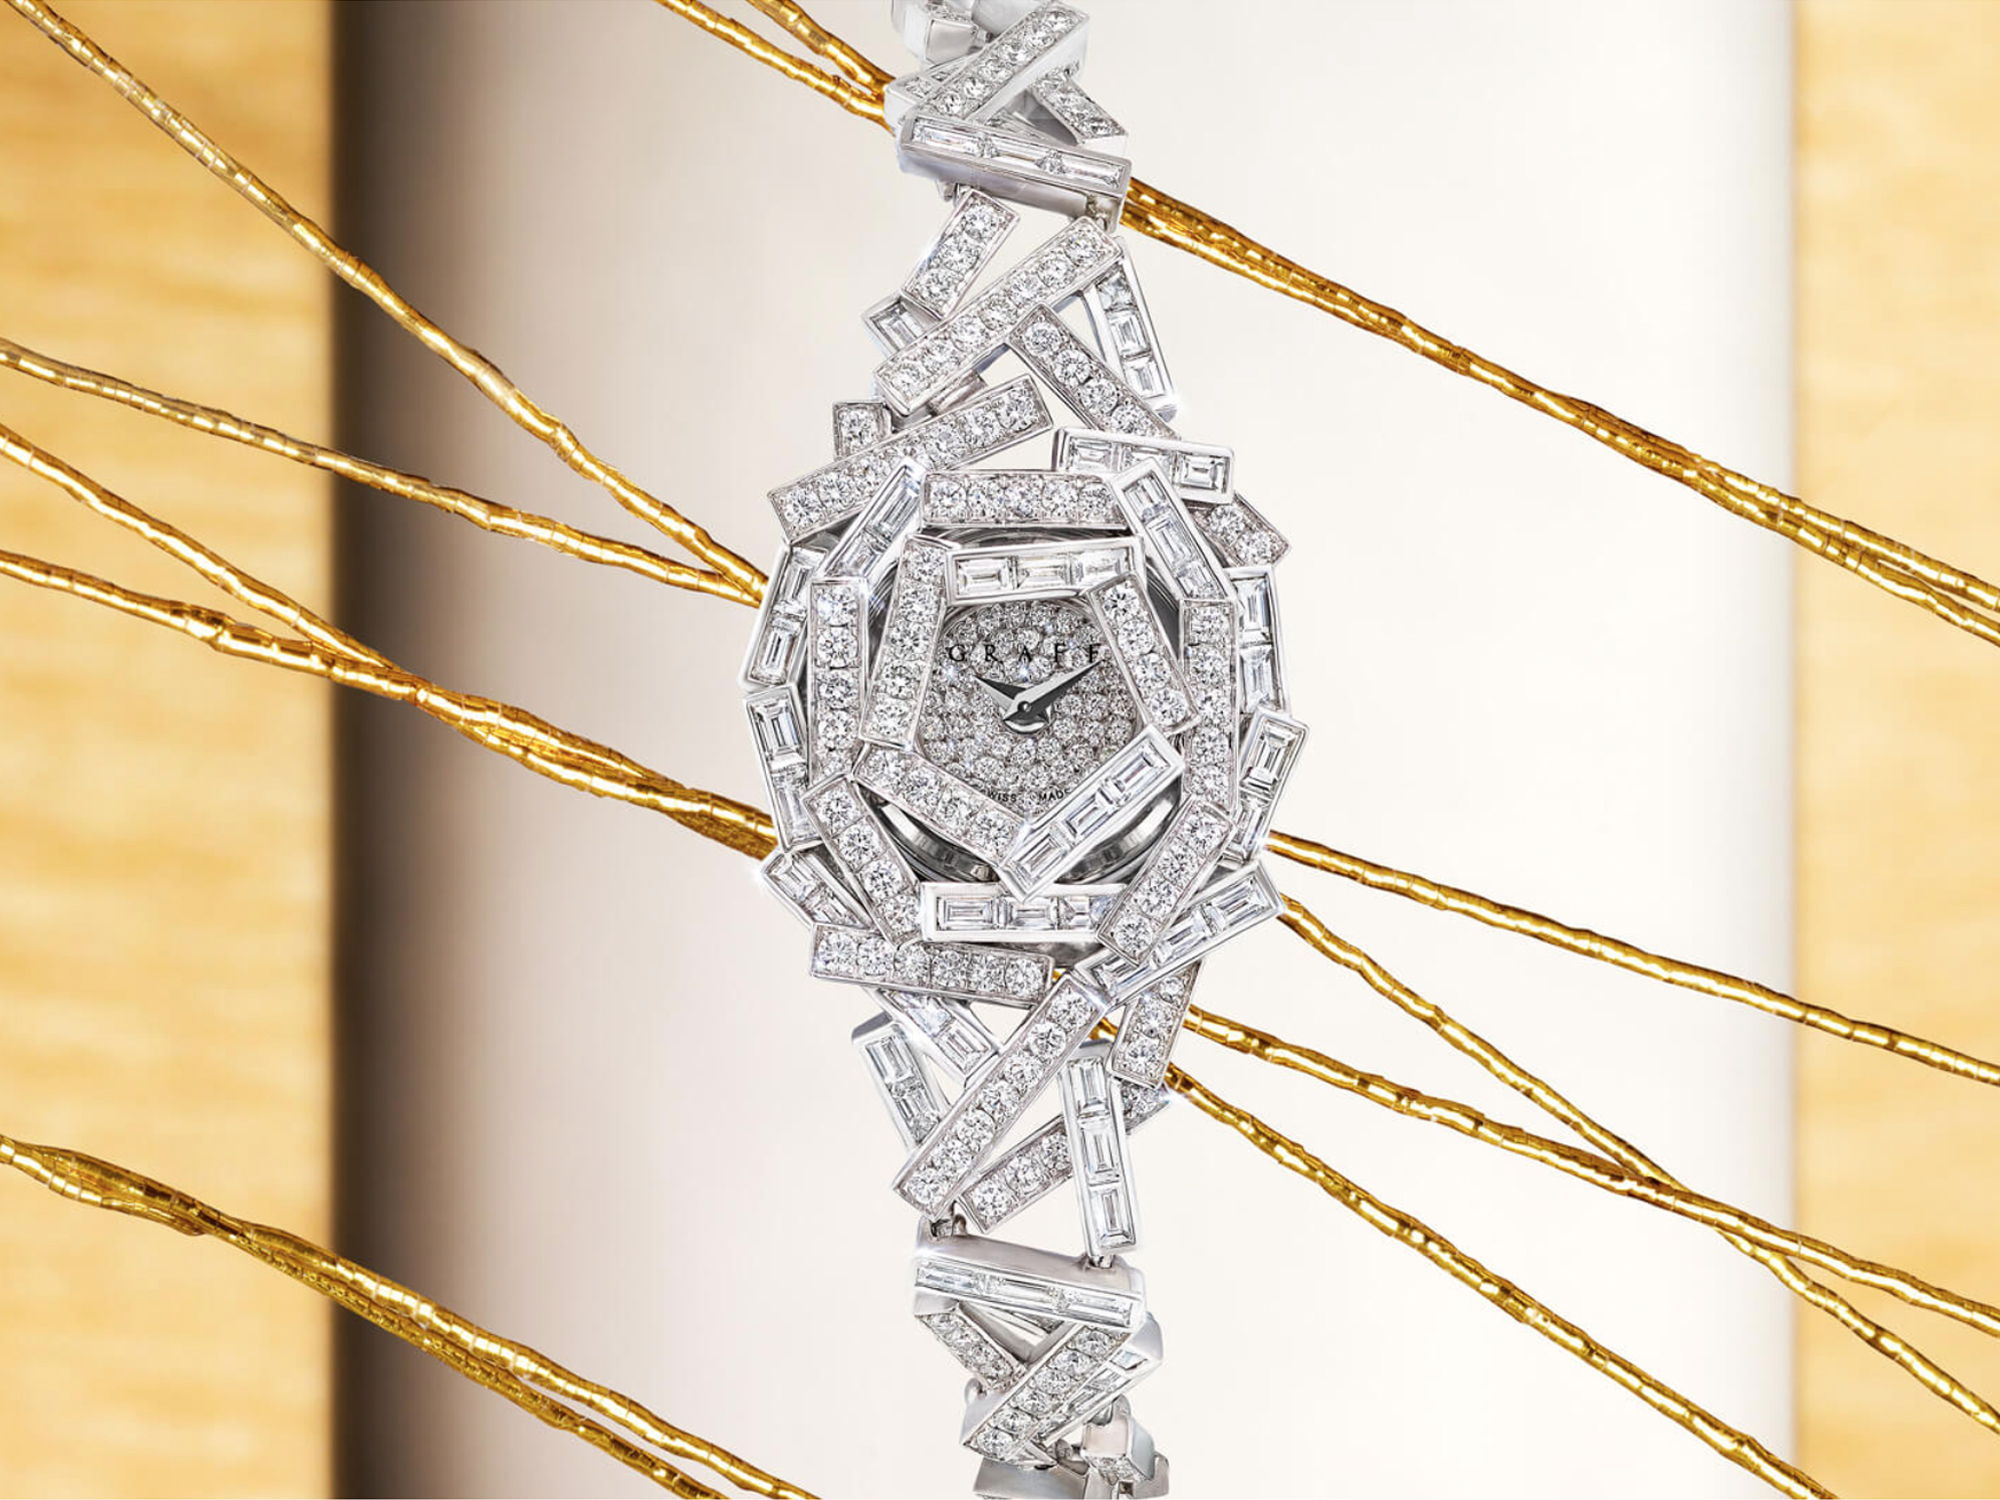 Threads Diamond high jewellery watch from the Graff jewellery collection